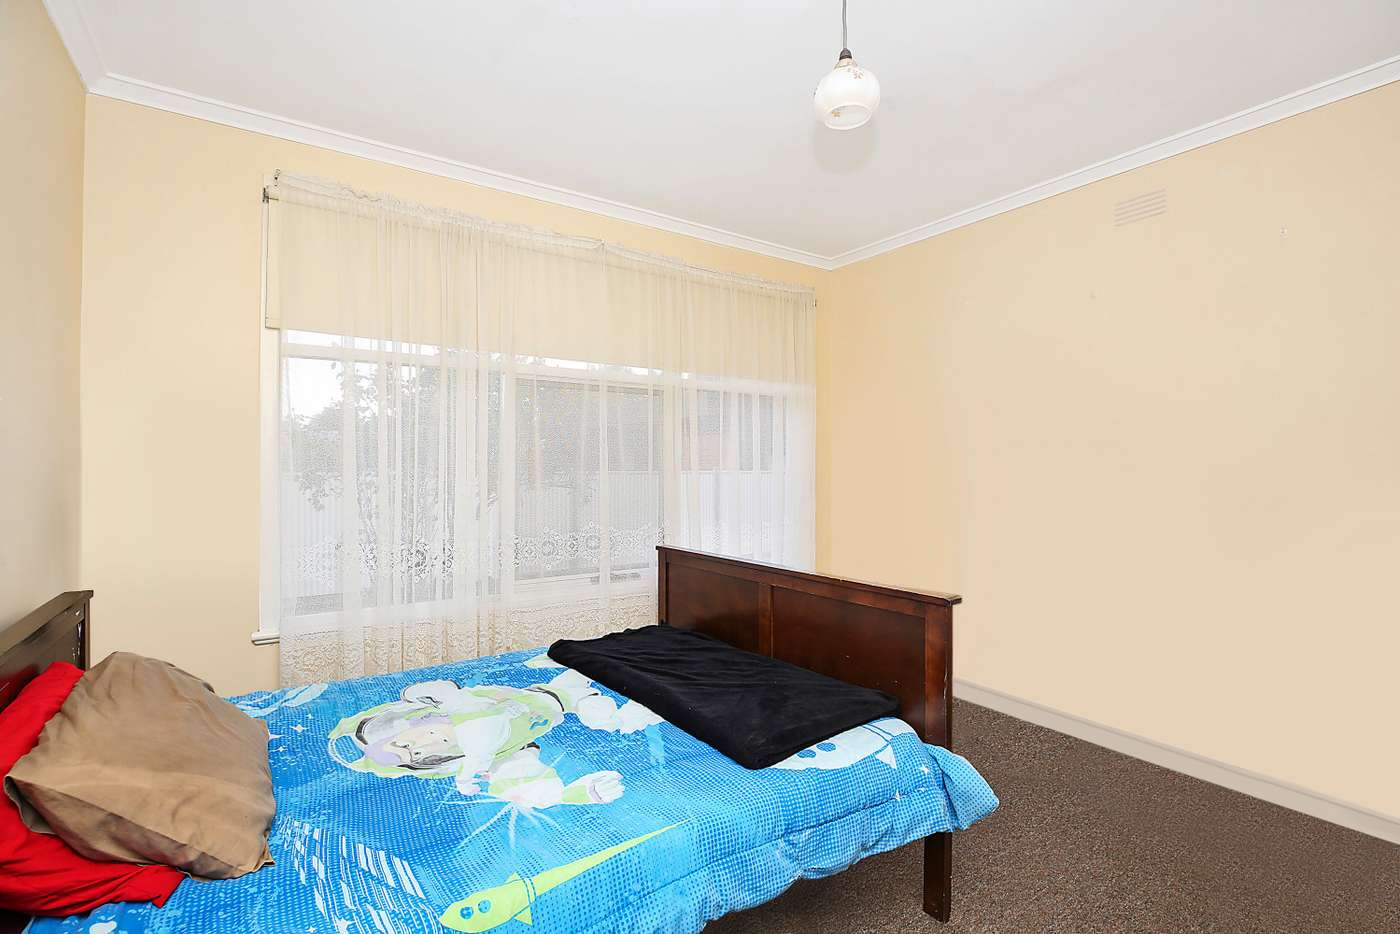 Seventh view of Homely house listing, 27 Manifold Street, Camperdown VIC 3260